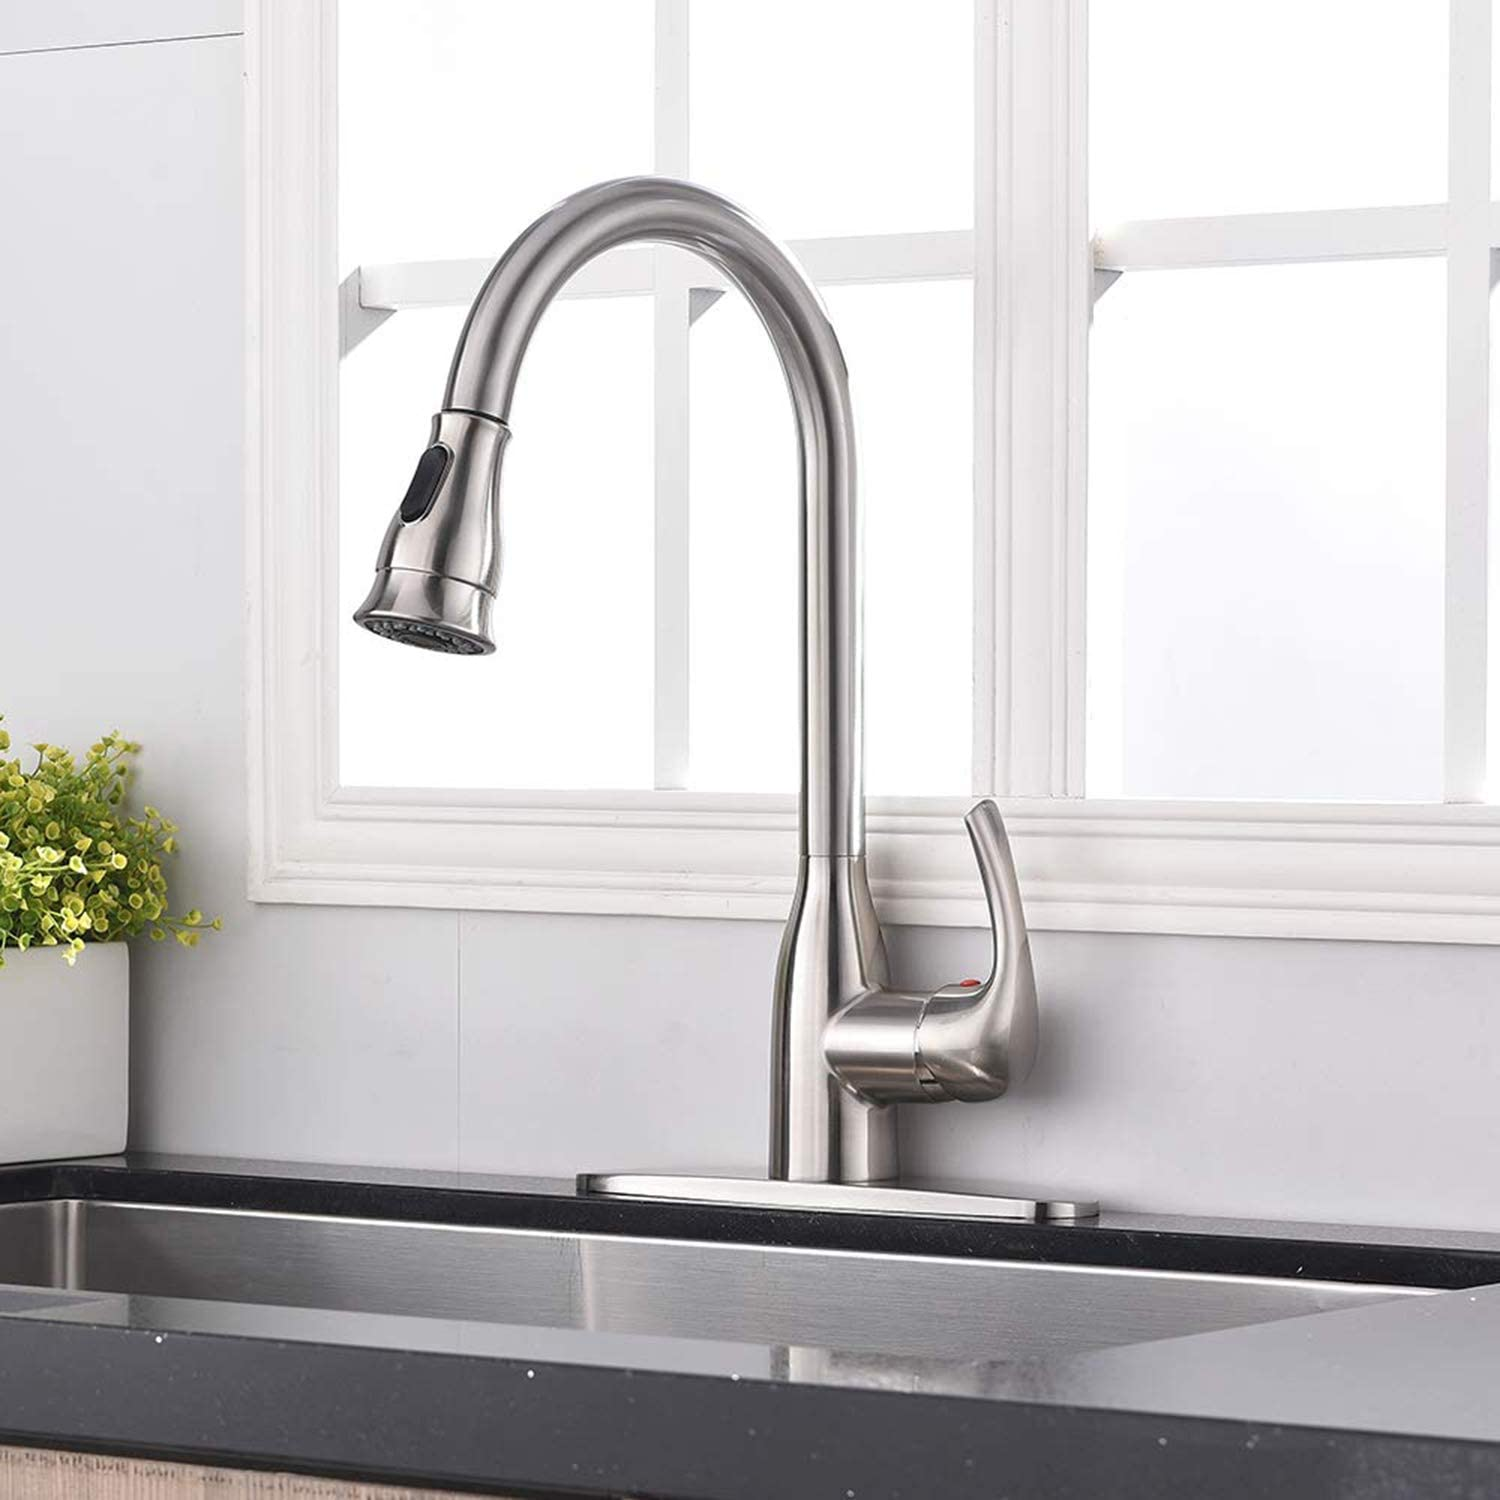 Hotis Commercial Pull Out Single Handle Stainless Steel Pull Down Sprayer  Kitchen Sink Faucet, Brushed Nickel Kitchen Faucet with Escutcheon